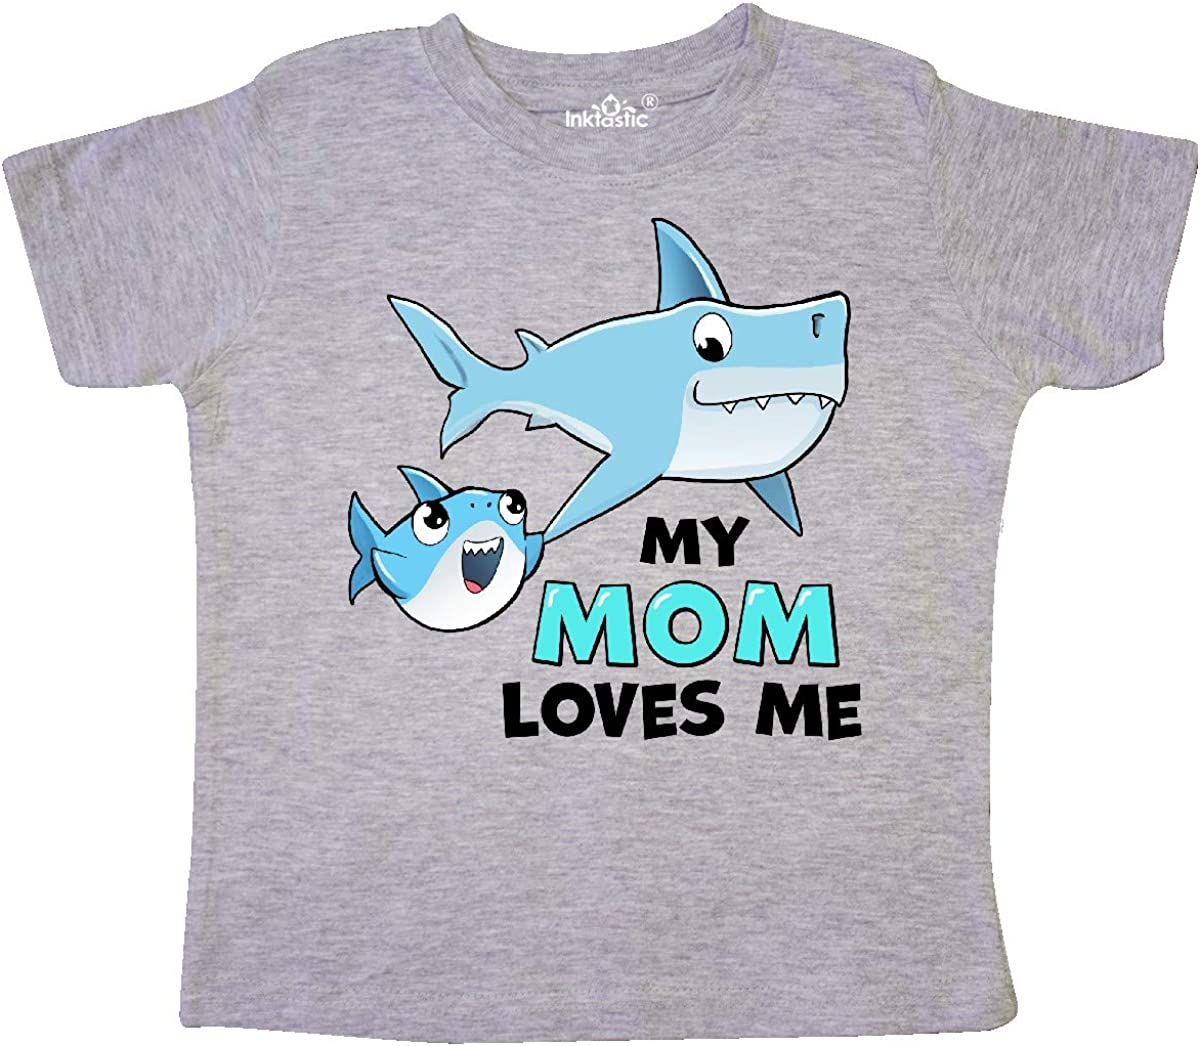 inktastic My Mom Loves Me with Cute Sharks Toddler T-Shirt